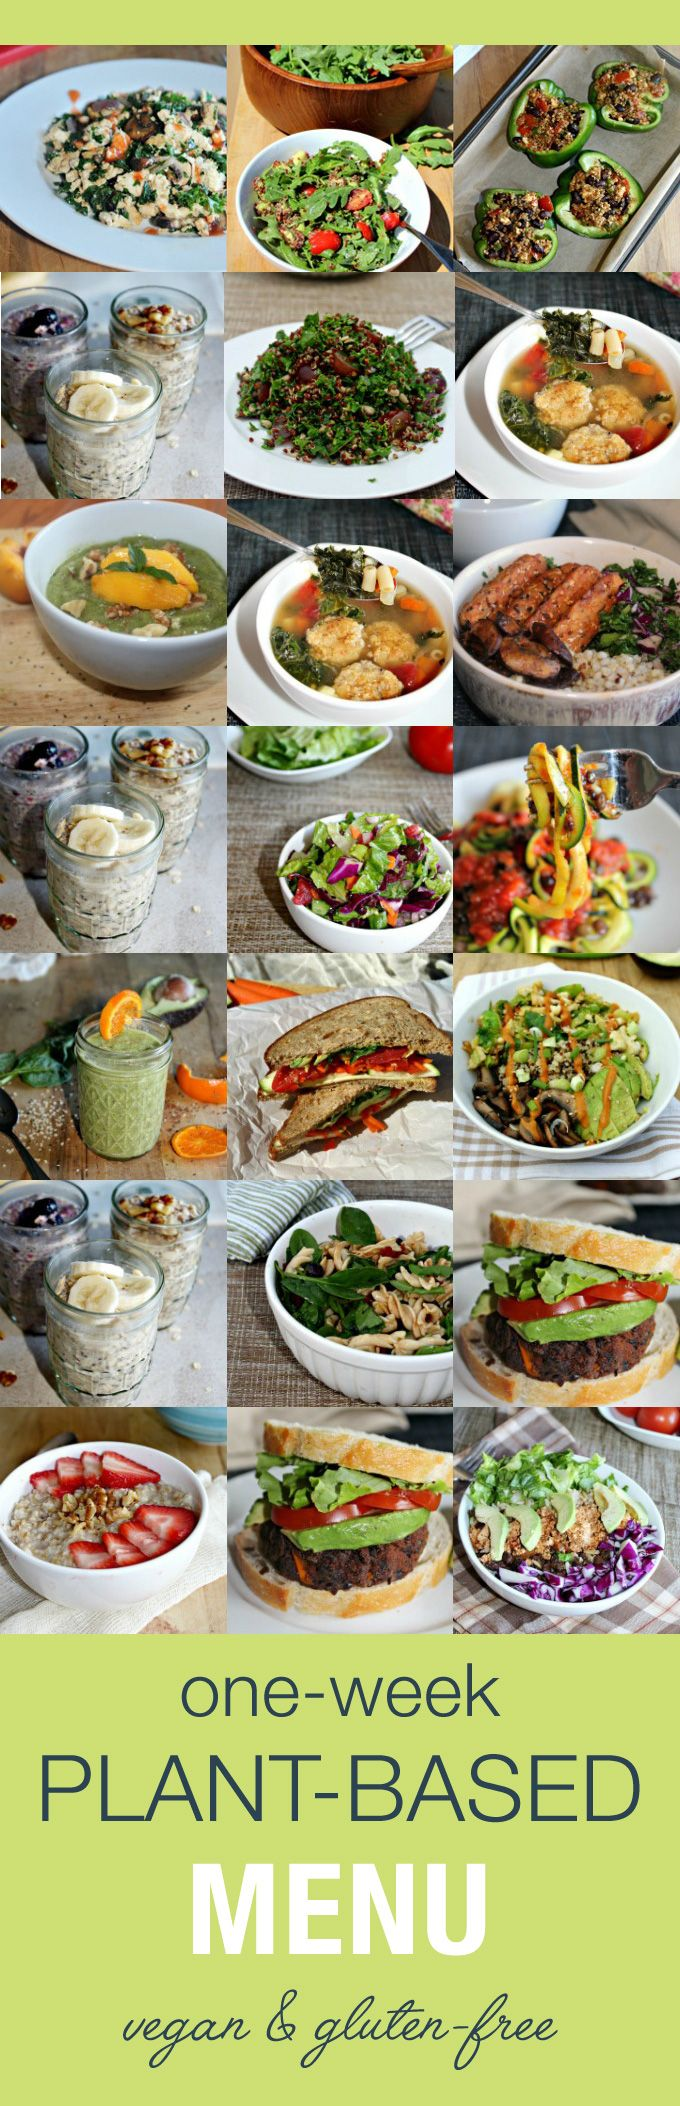 One-Week Plant-Based Menu - a collection of comforting gluten-free vegan meals shared by guest blogger Anne from SimpleandSavory.com